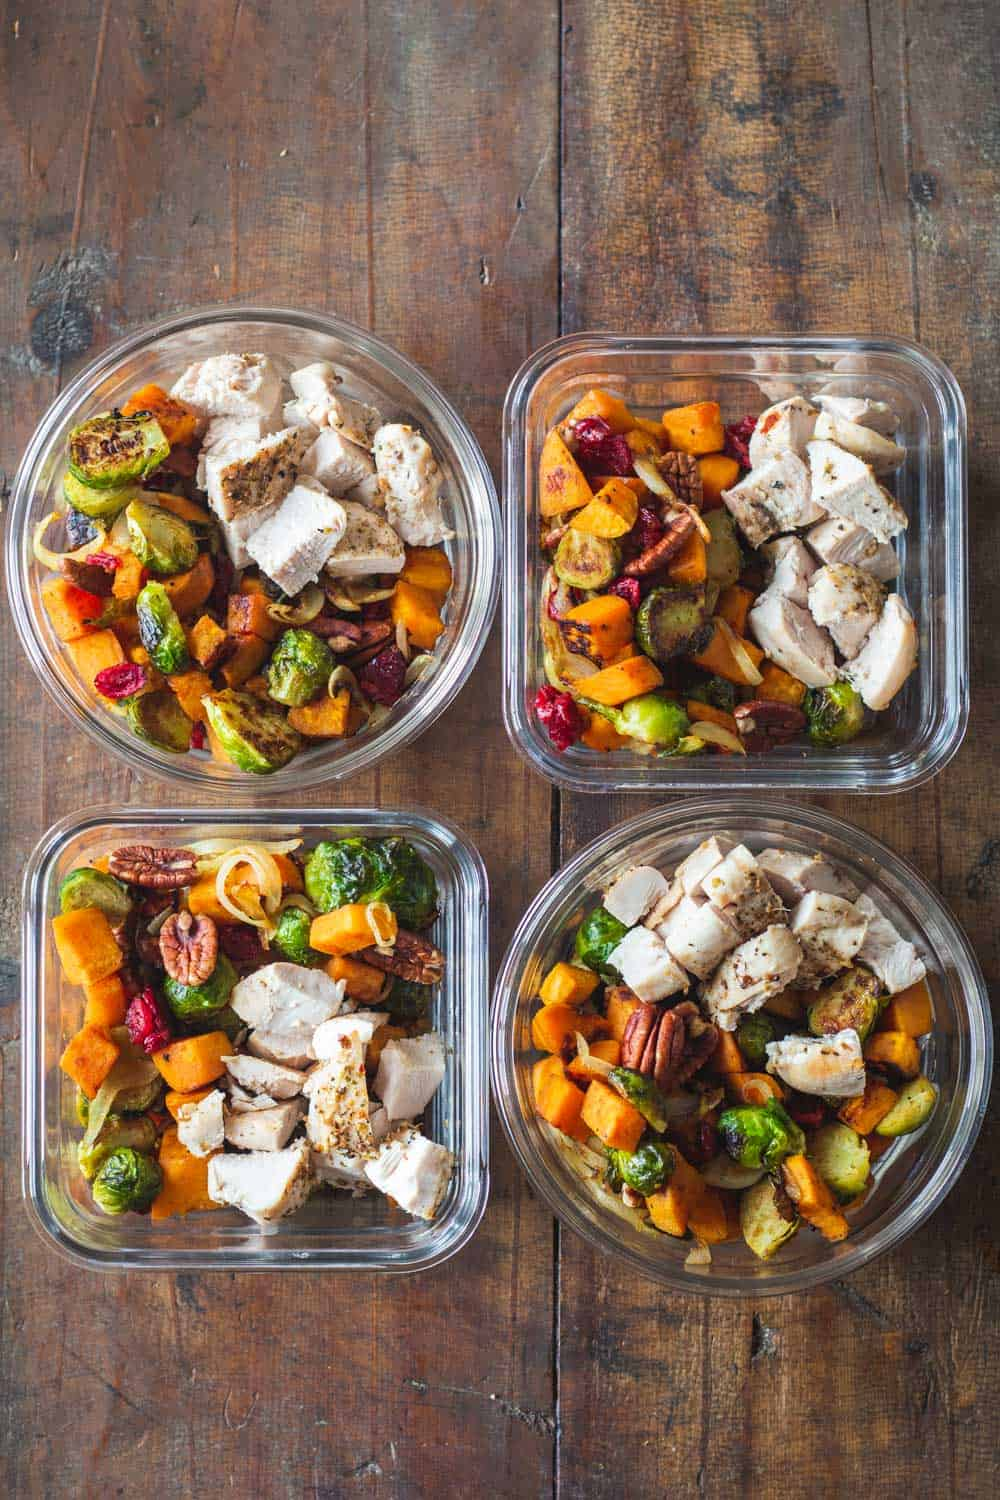 Four Maple Dijon Chicken Meal Prep Bowls on a wooden table.